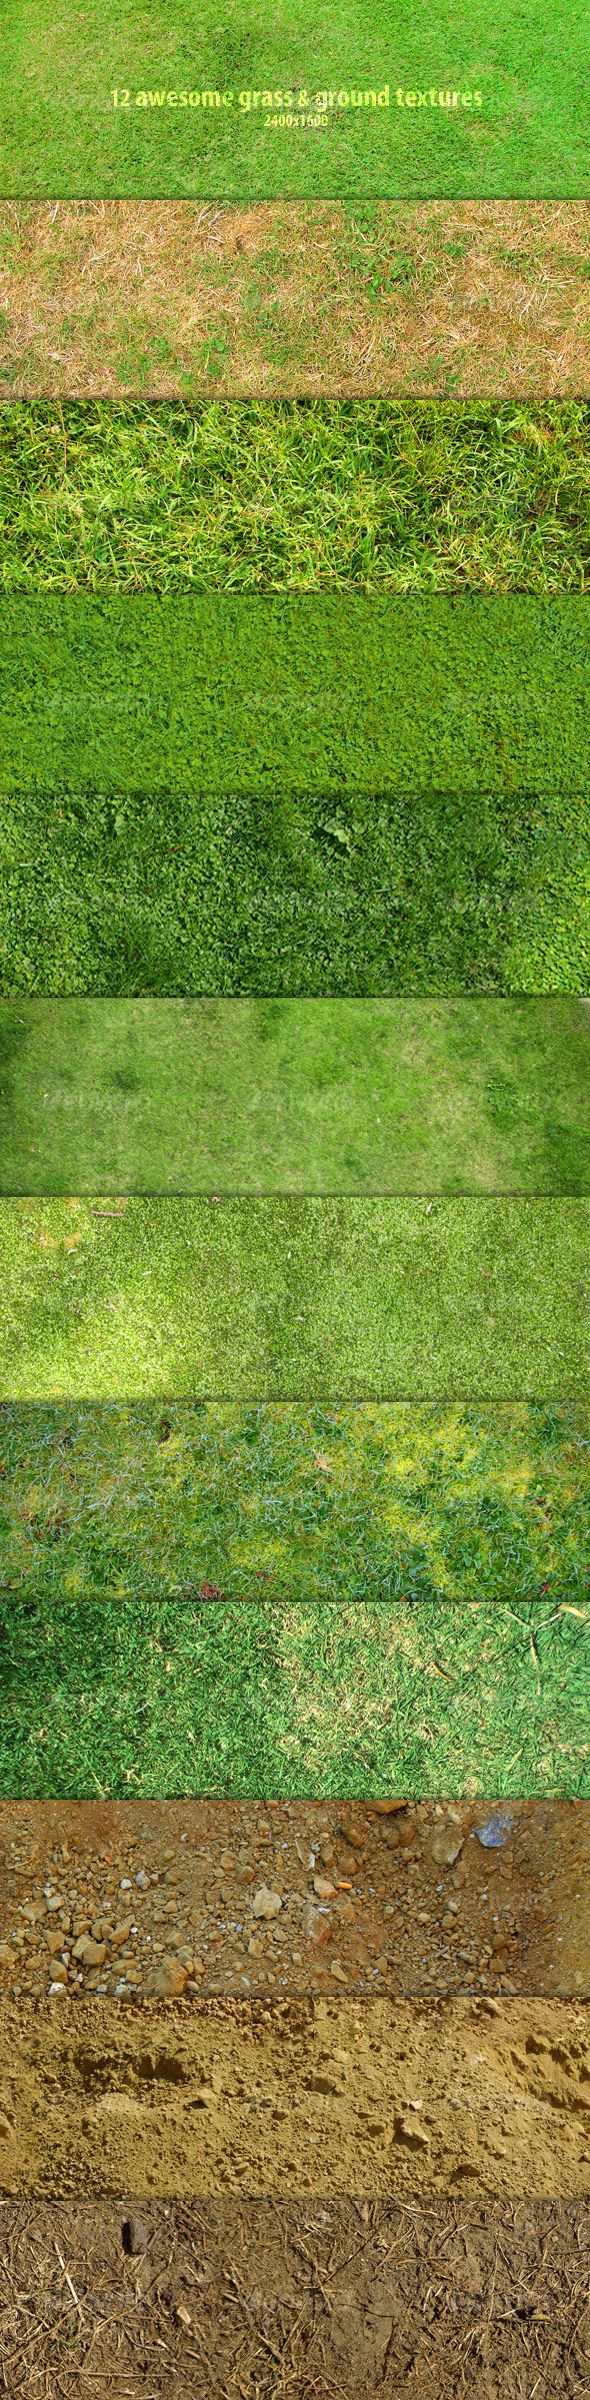 12 Awesome grass & ground textures - Nature Textures